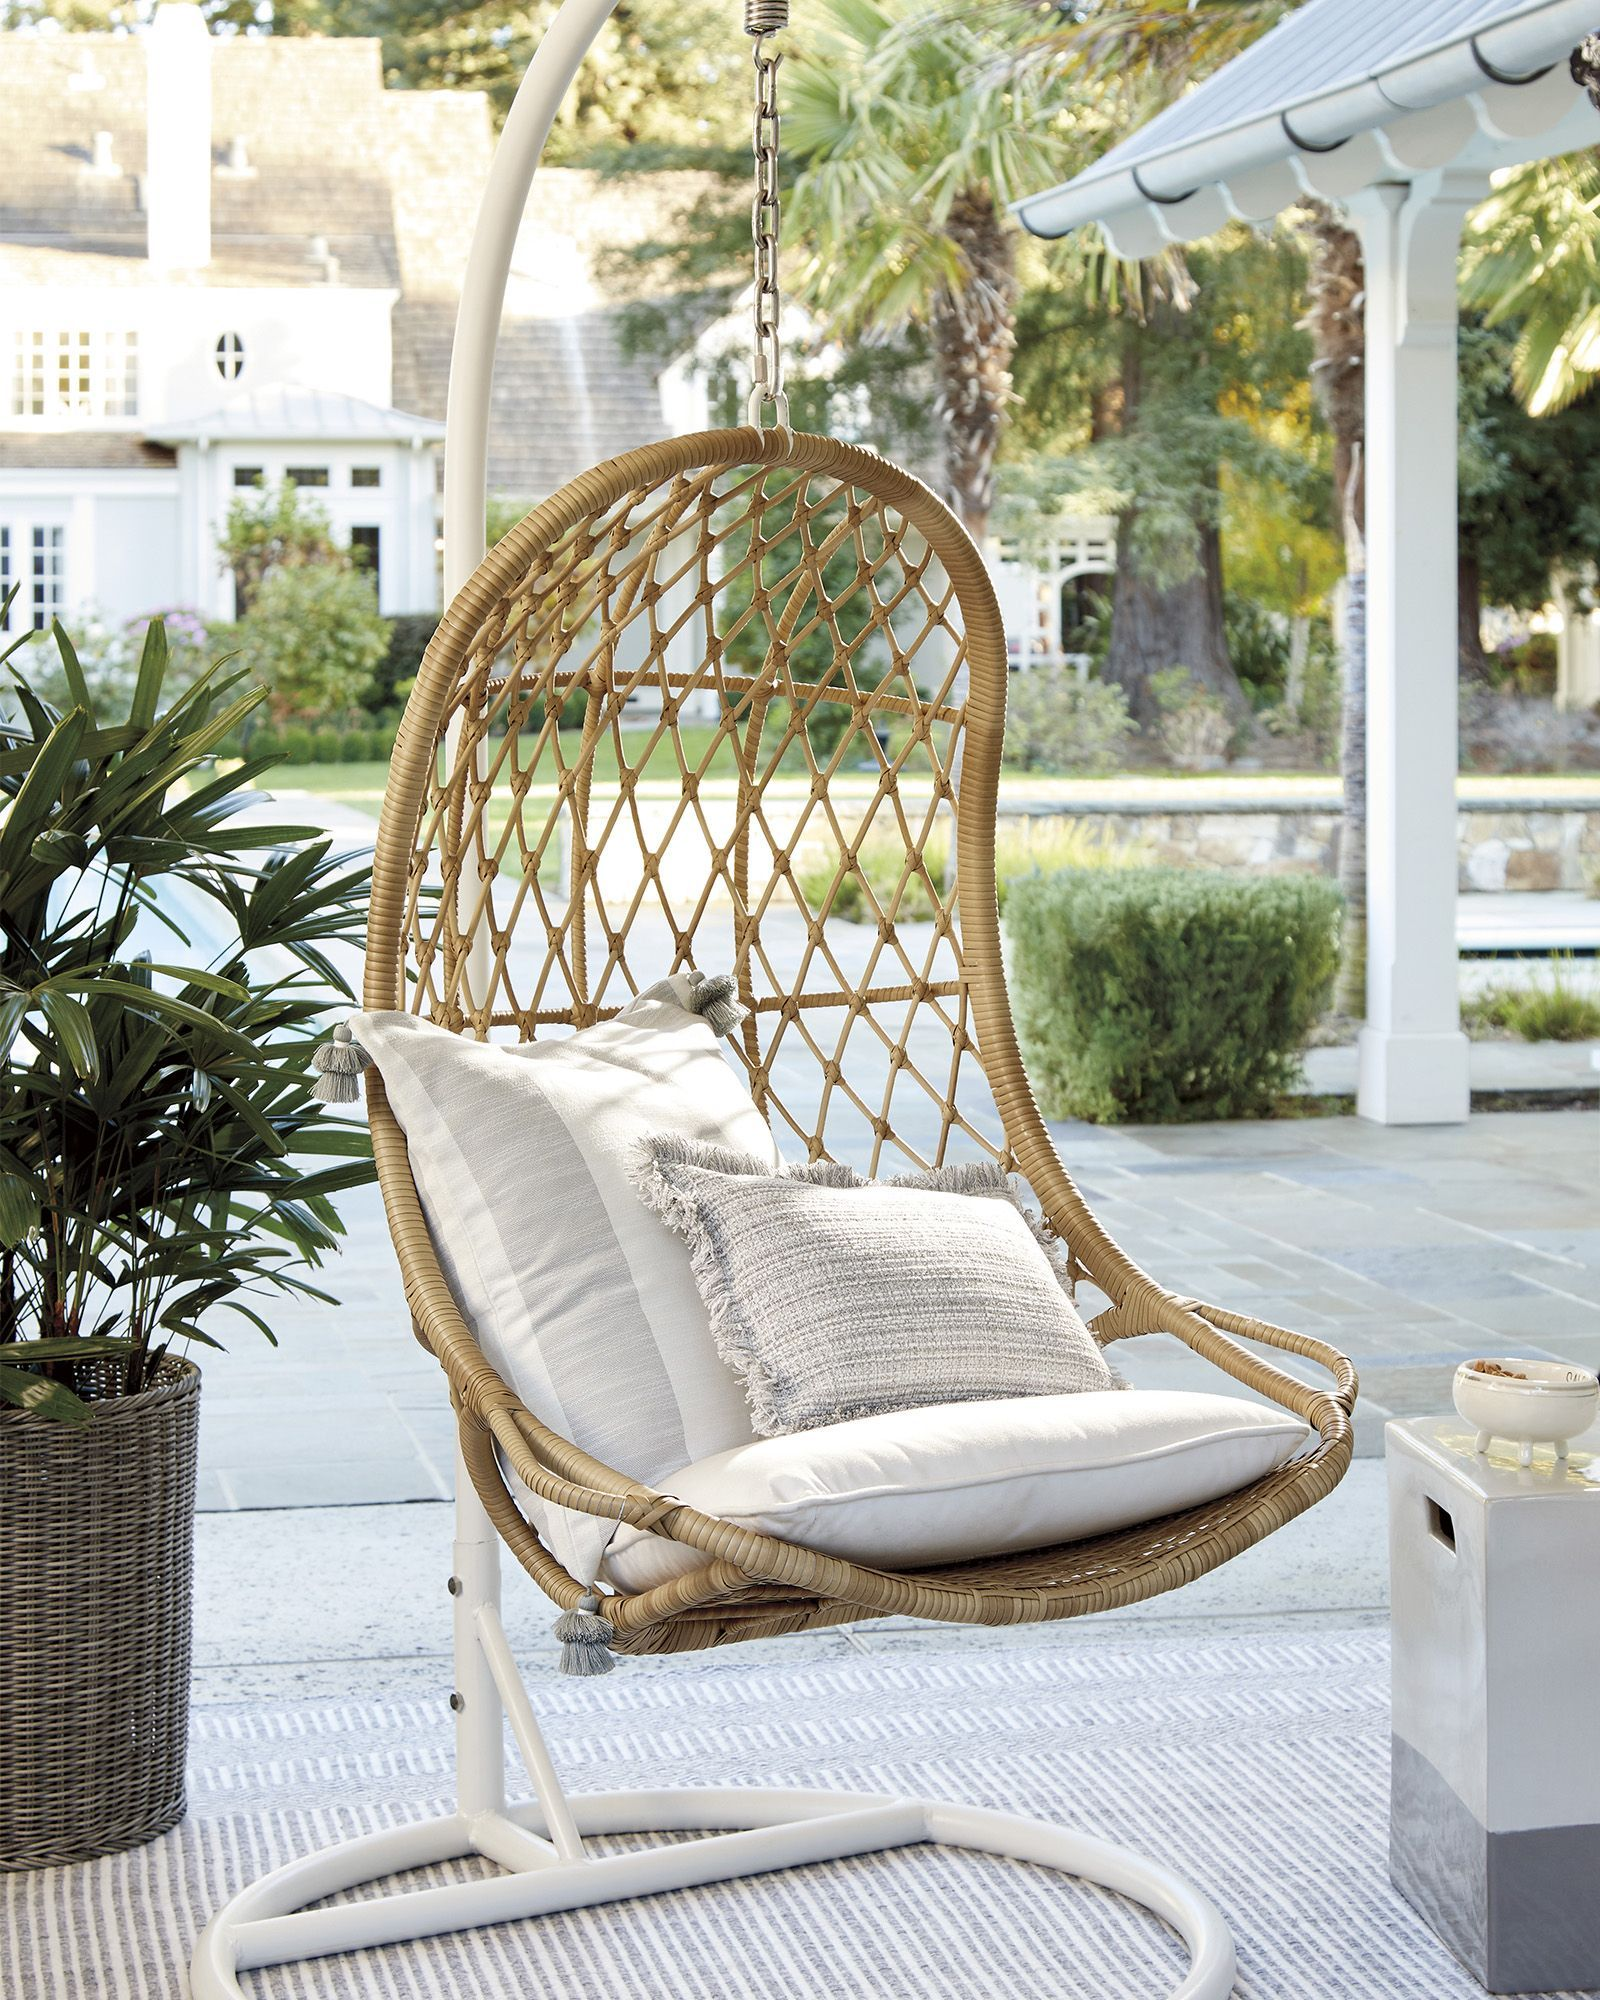 12 Best Patio Egg Chairs Of 2021, Outdoor Swing Chairs With Stand